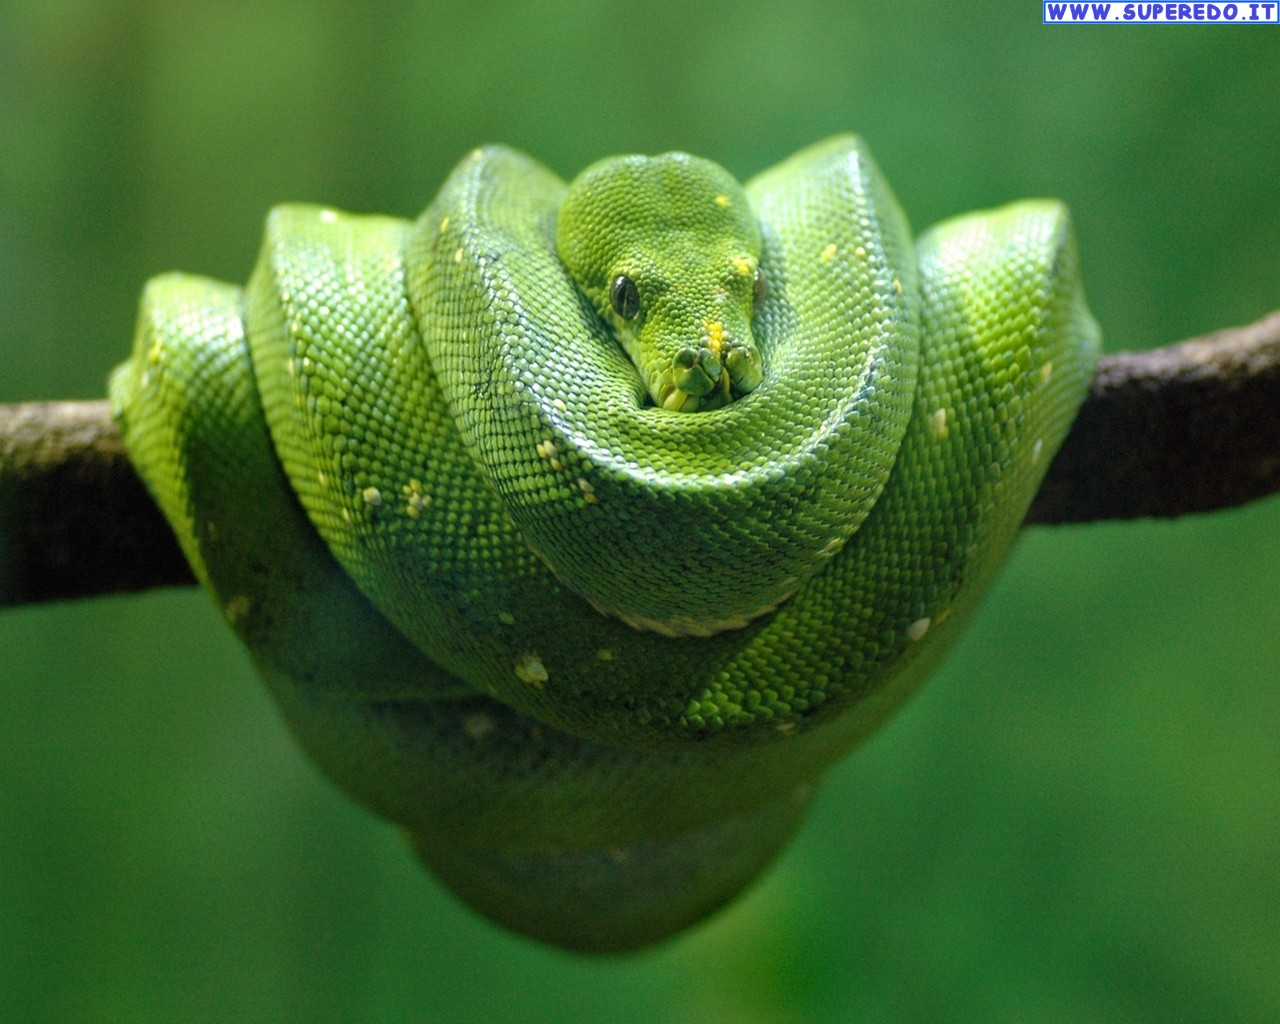 Snakes Desktop Wallpapers 55 High Definition Wallpapers 1280x1024